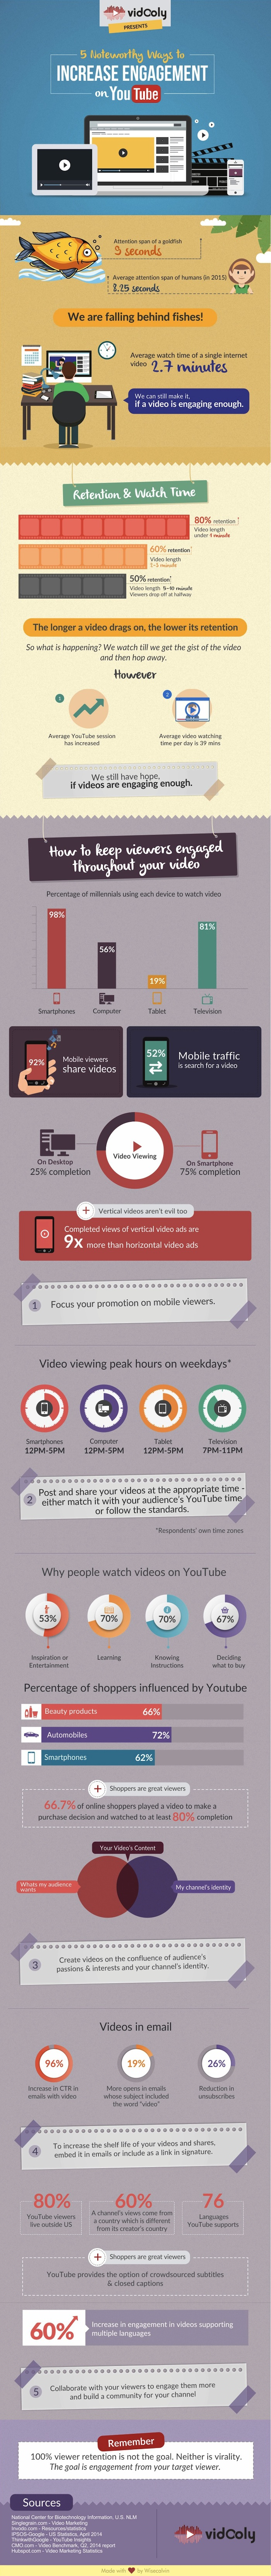 5 Tips for Increasing YouTube Engagement